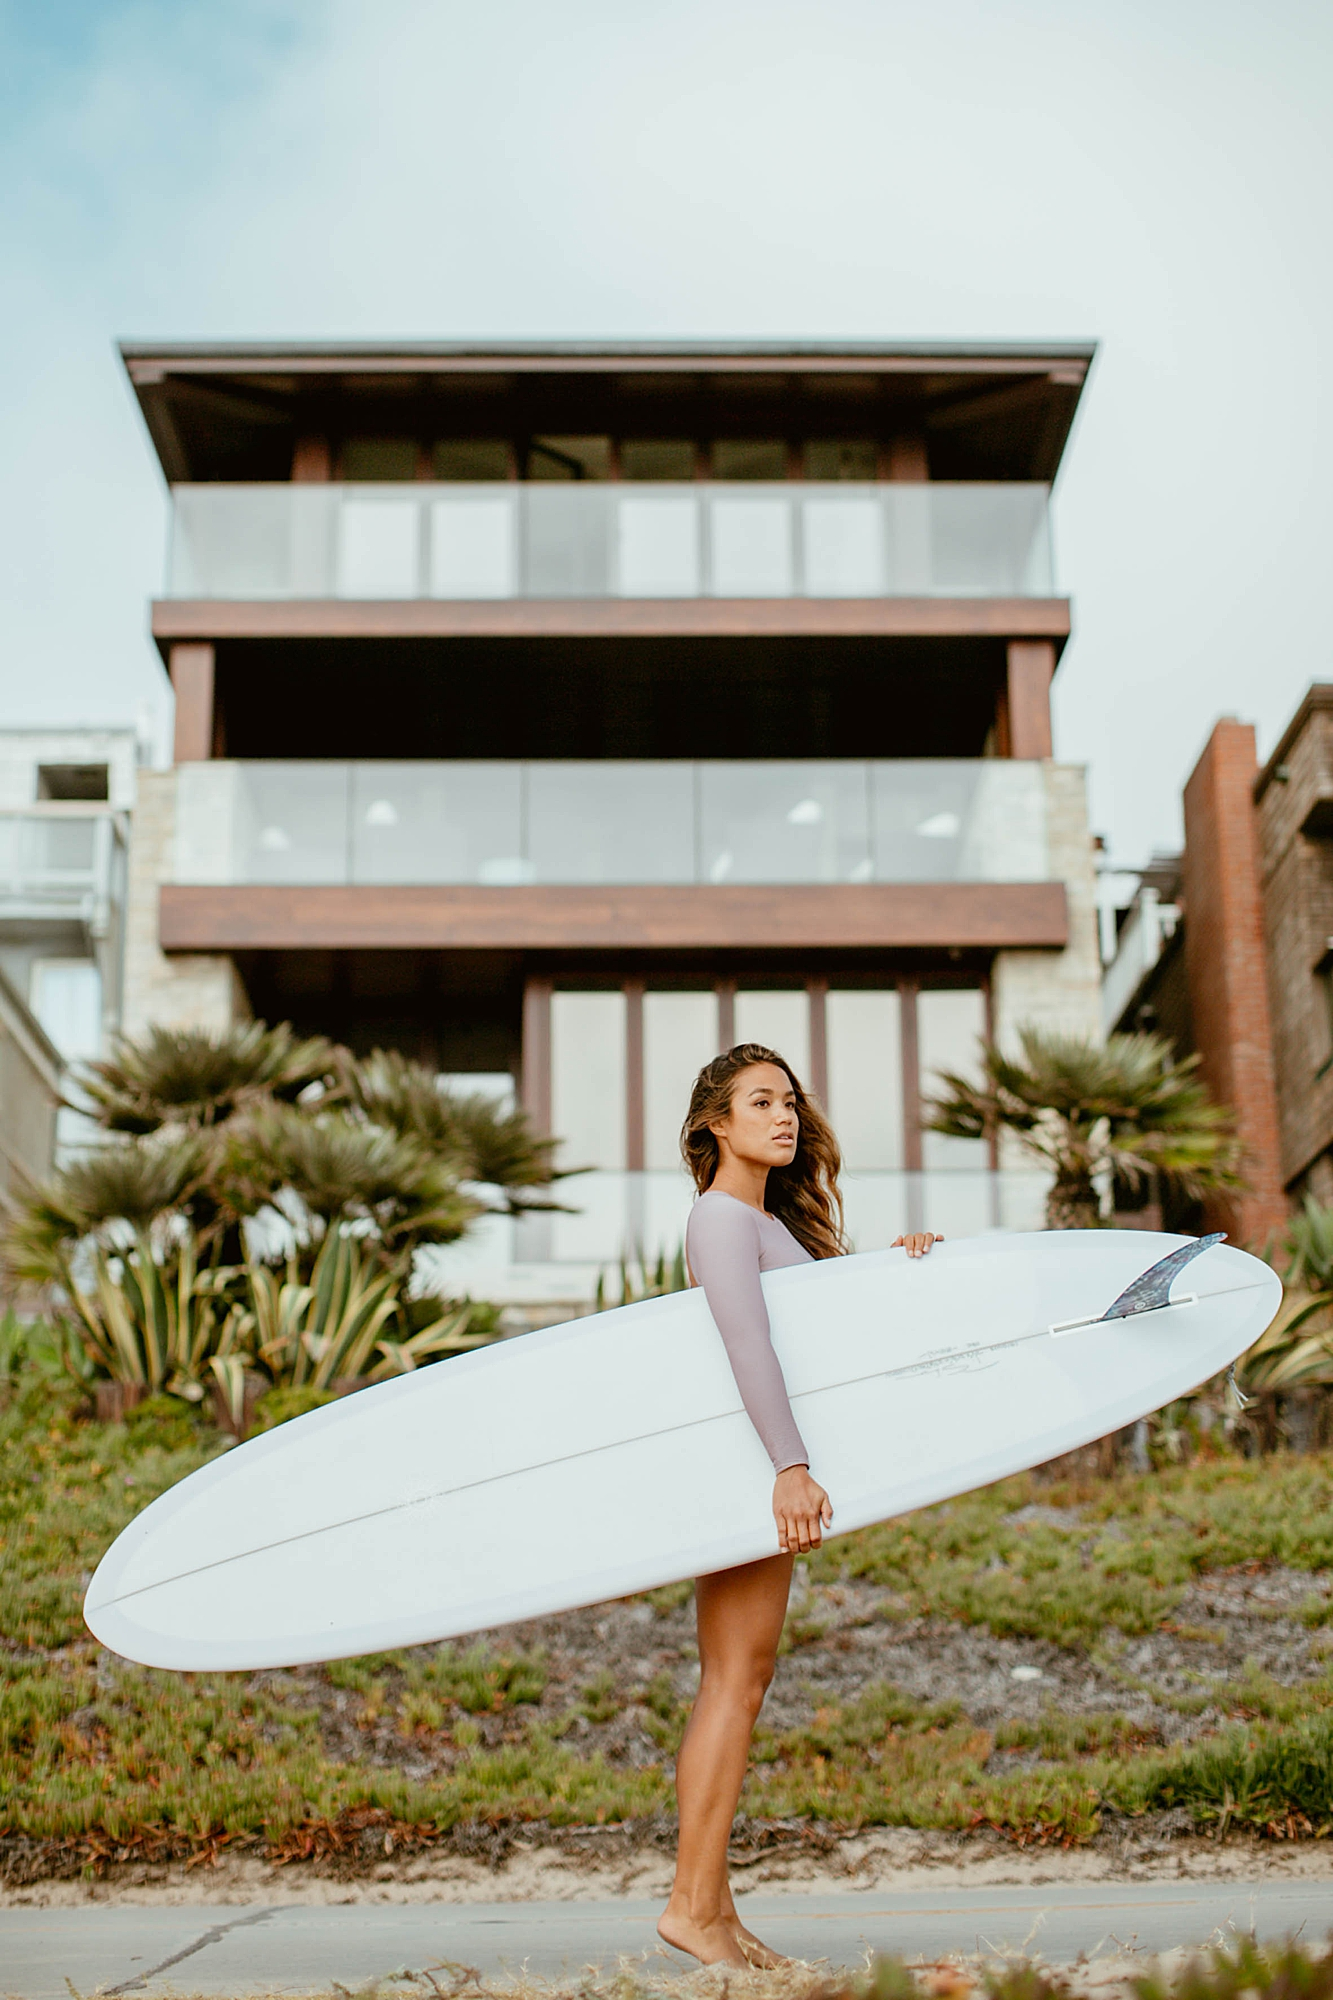 Southern California Surf and Lifestyle Fashion Photographer Kelee Bovelle @keleeb X Eryn Krouse @erynkrouse_0004.jpg